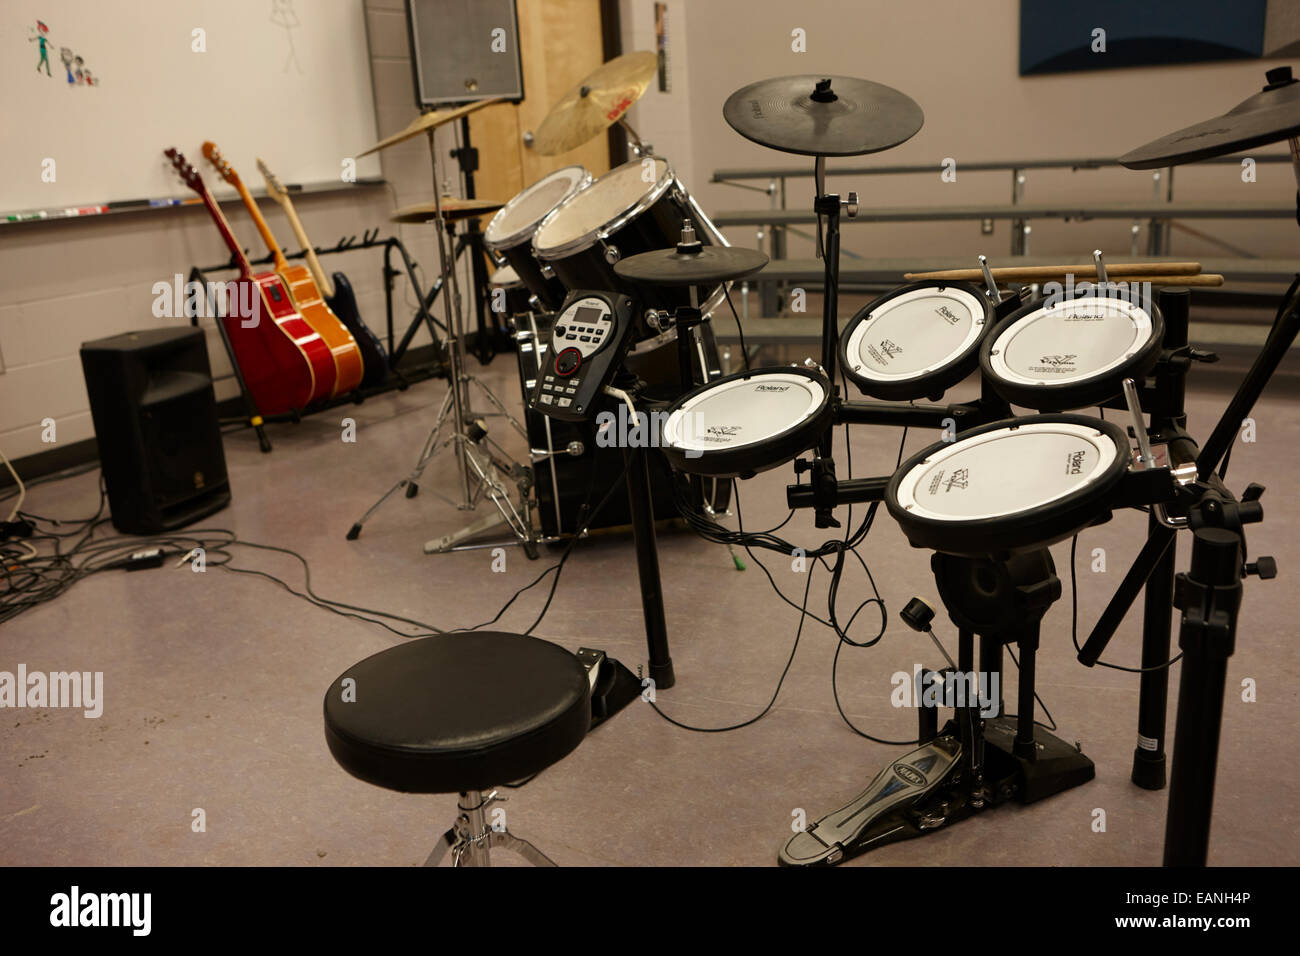 electronic and acoustic drum kit in a music training room - Stock Image